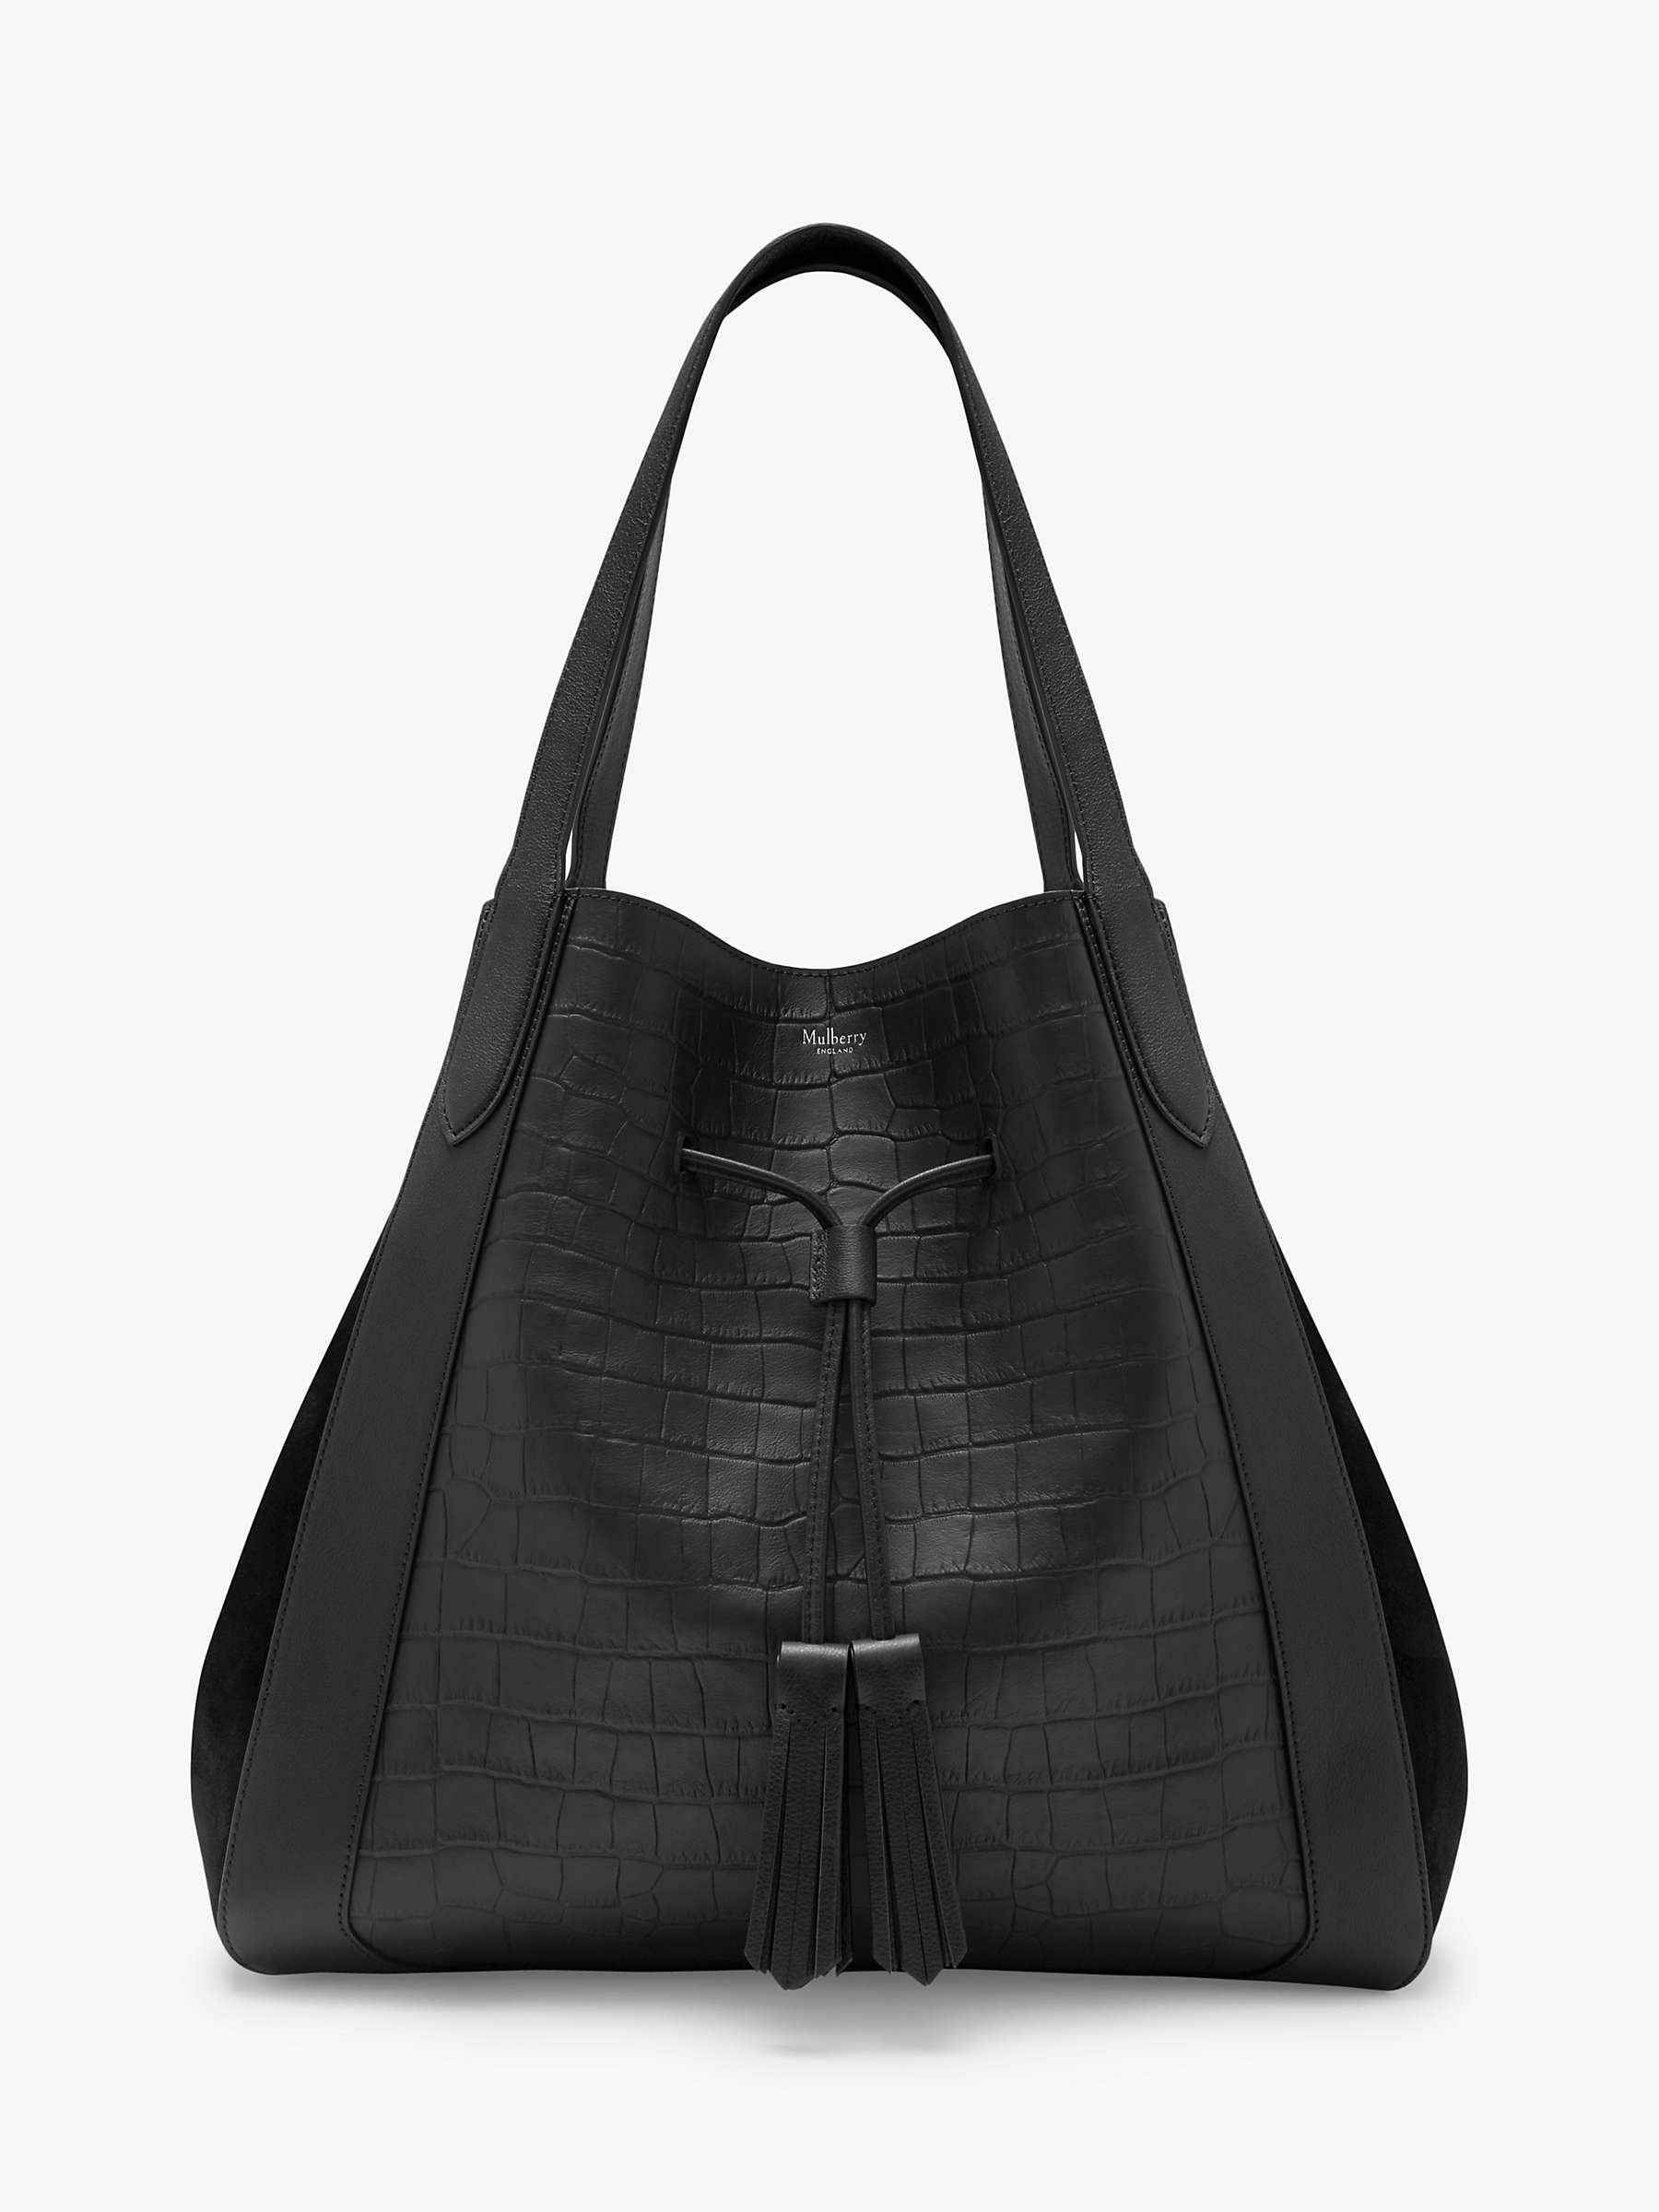 Mulberry Millie Croc Embossed Leather Tote Bag, Black by John Lewis